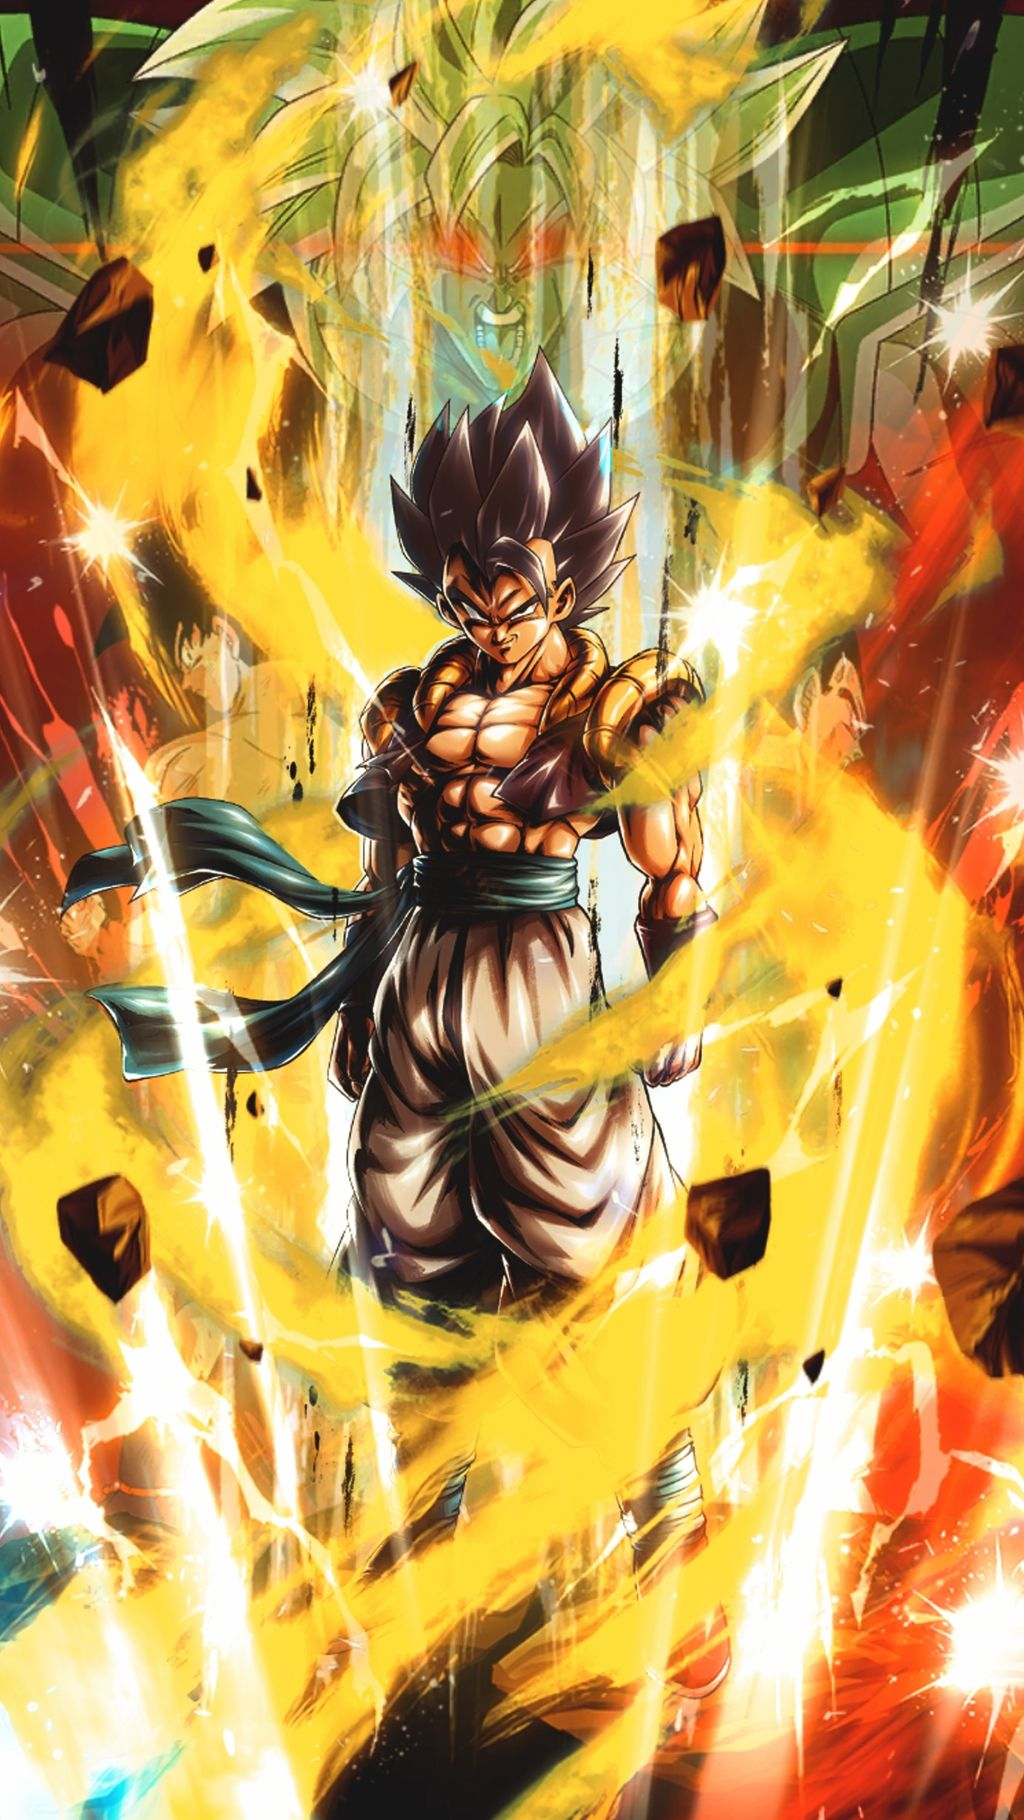 20 4k Wallpapers Of Dbz And Super For Phones Syanart Station In 2020 Anime Dragon Ball Super Dragon Ball Art Dragon Ball Image